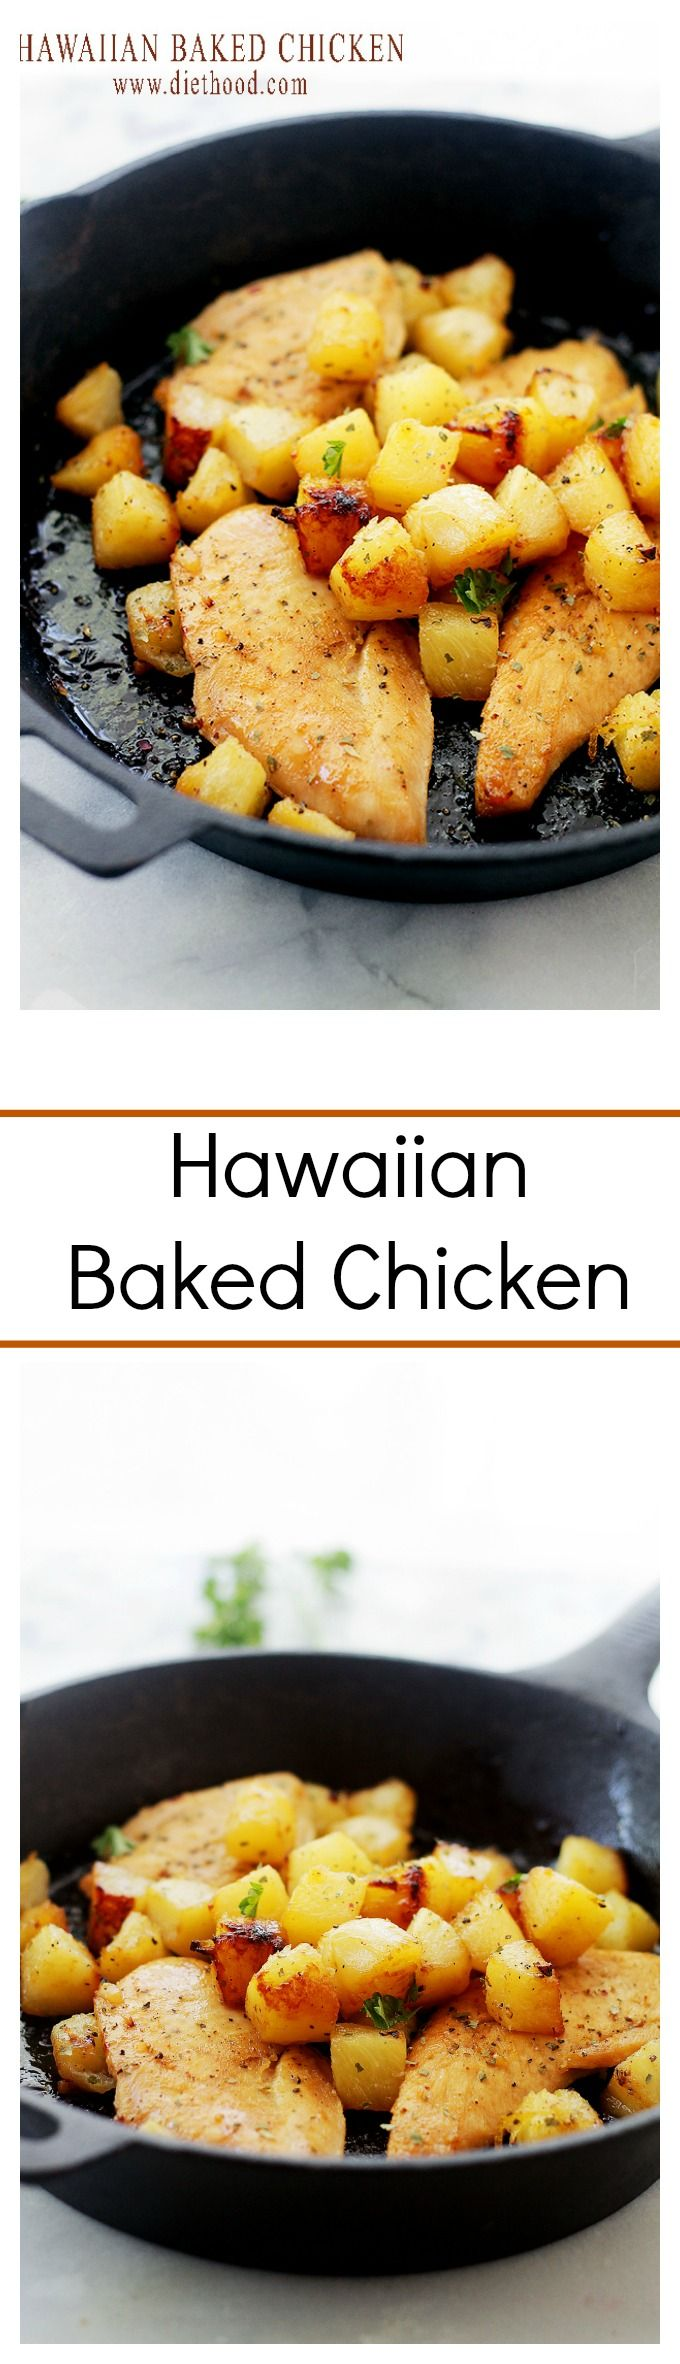 Hawaiian Baked Chicken - Marinaded in a garlicky-pineapple juice mixture, this is the most flavorful chicken you will ever make!